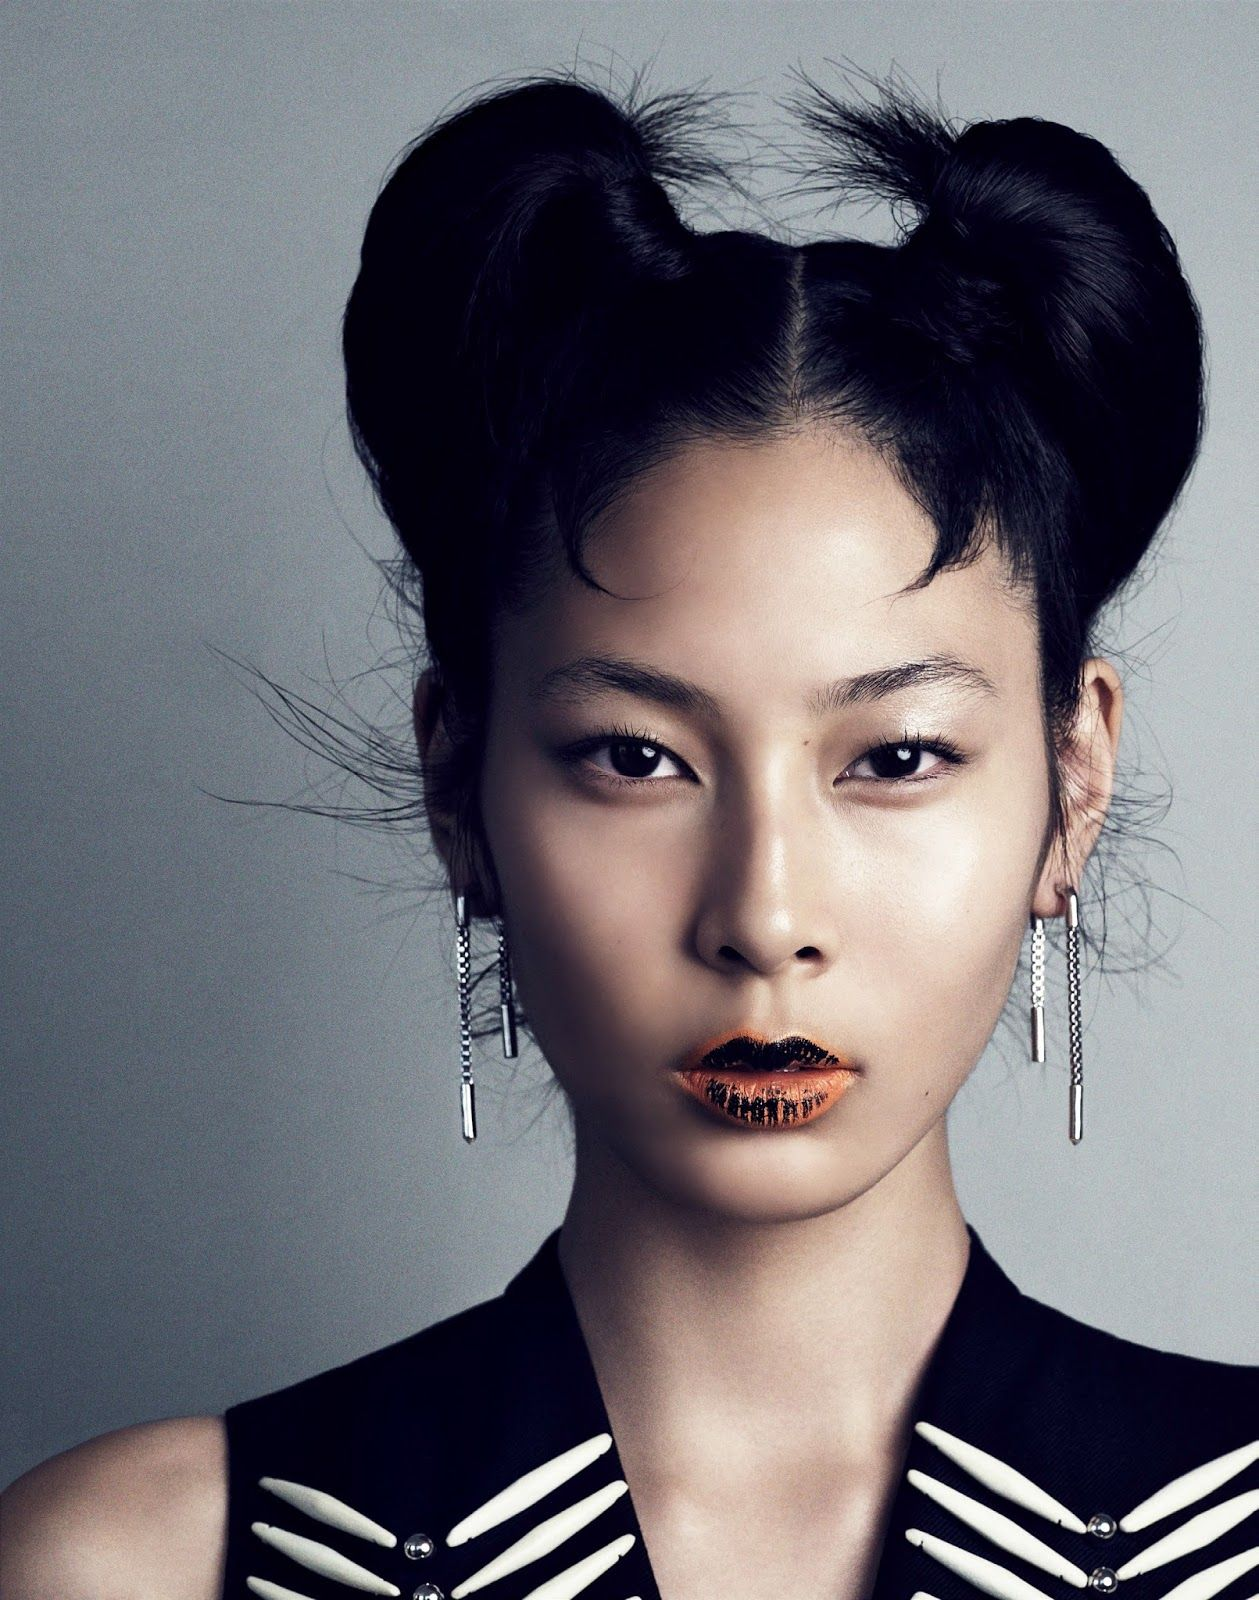 'The Face of East Asia' in Vogue Japan September 2016 by Marcus Ohlsson